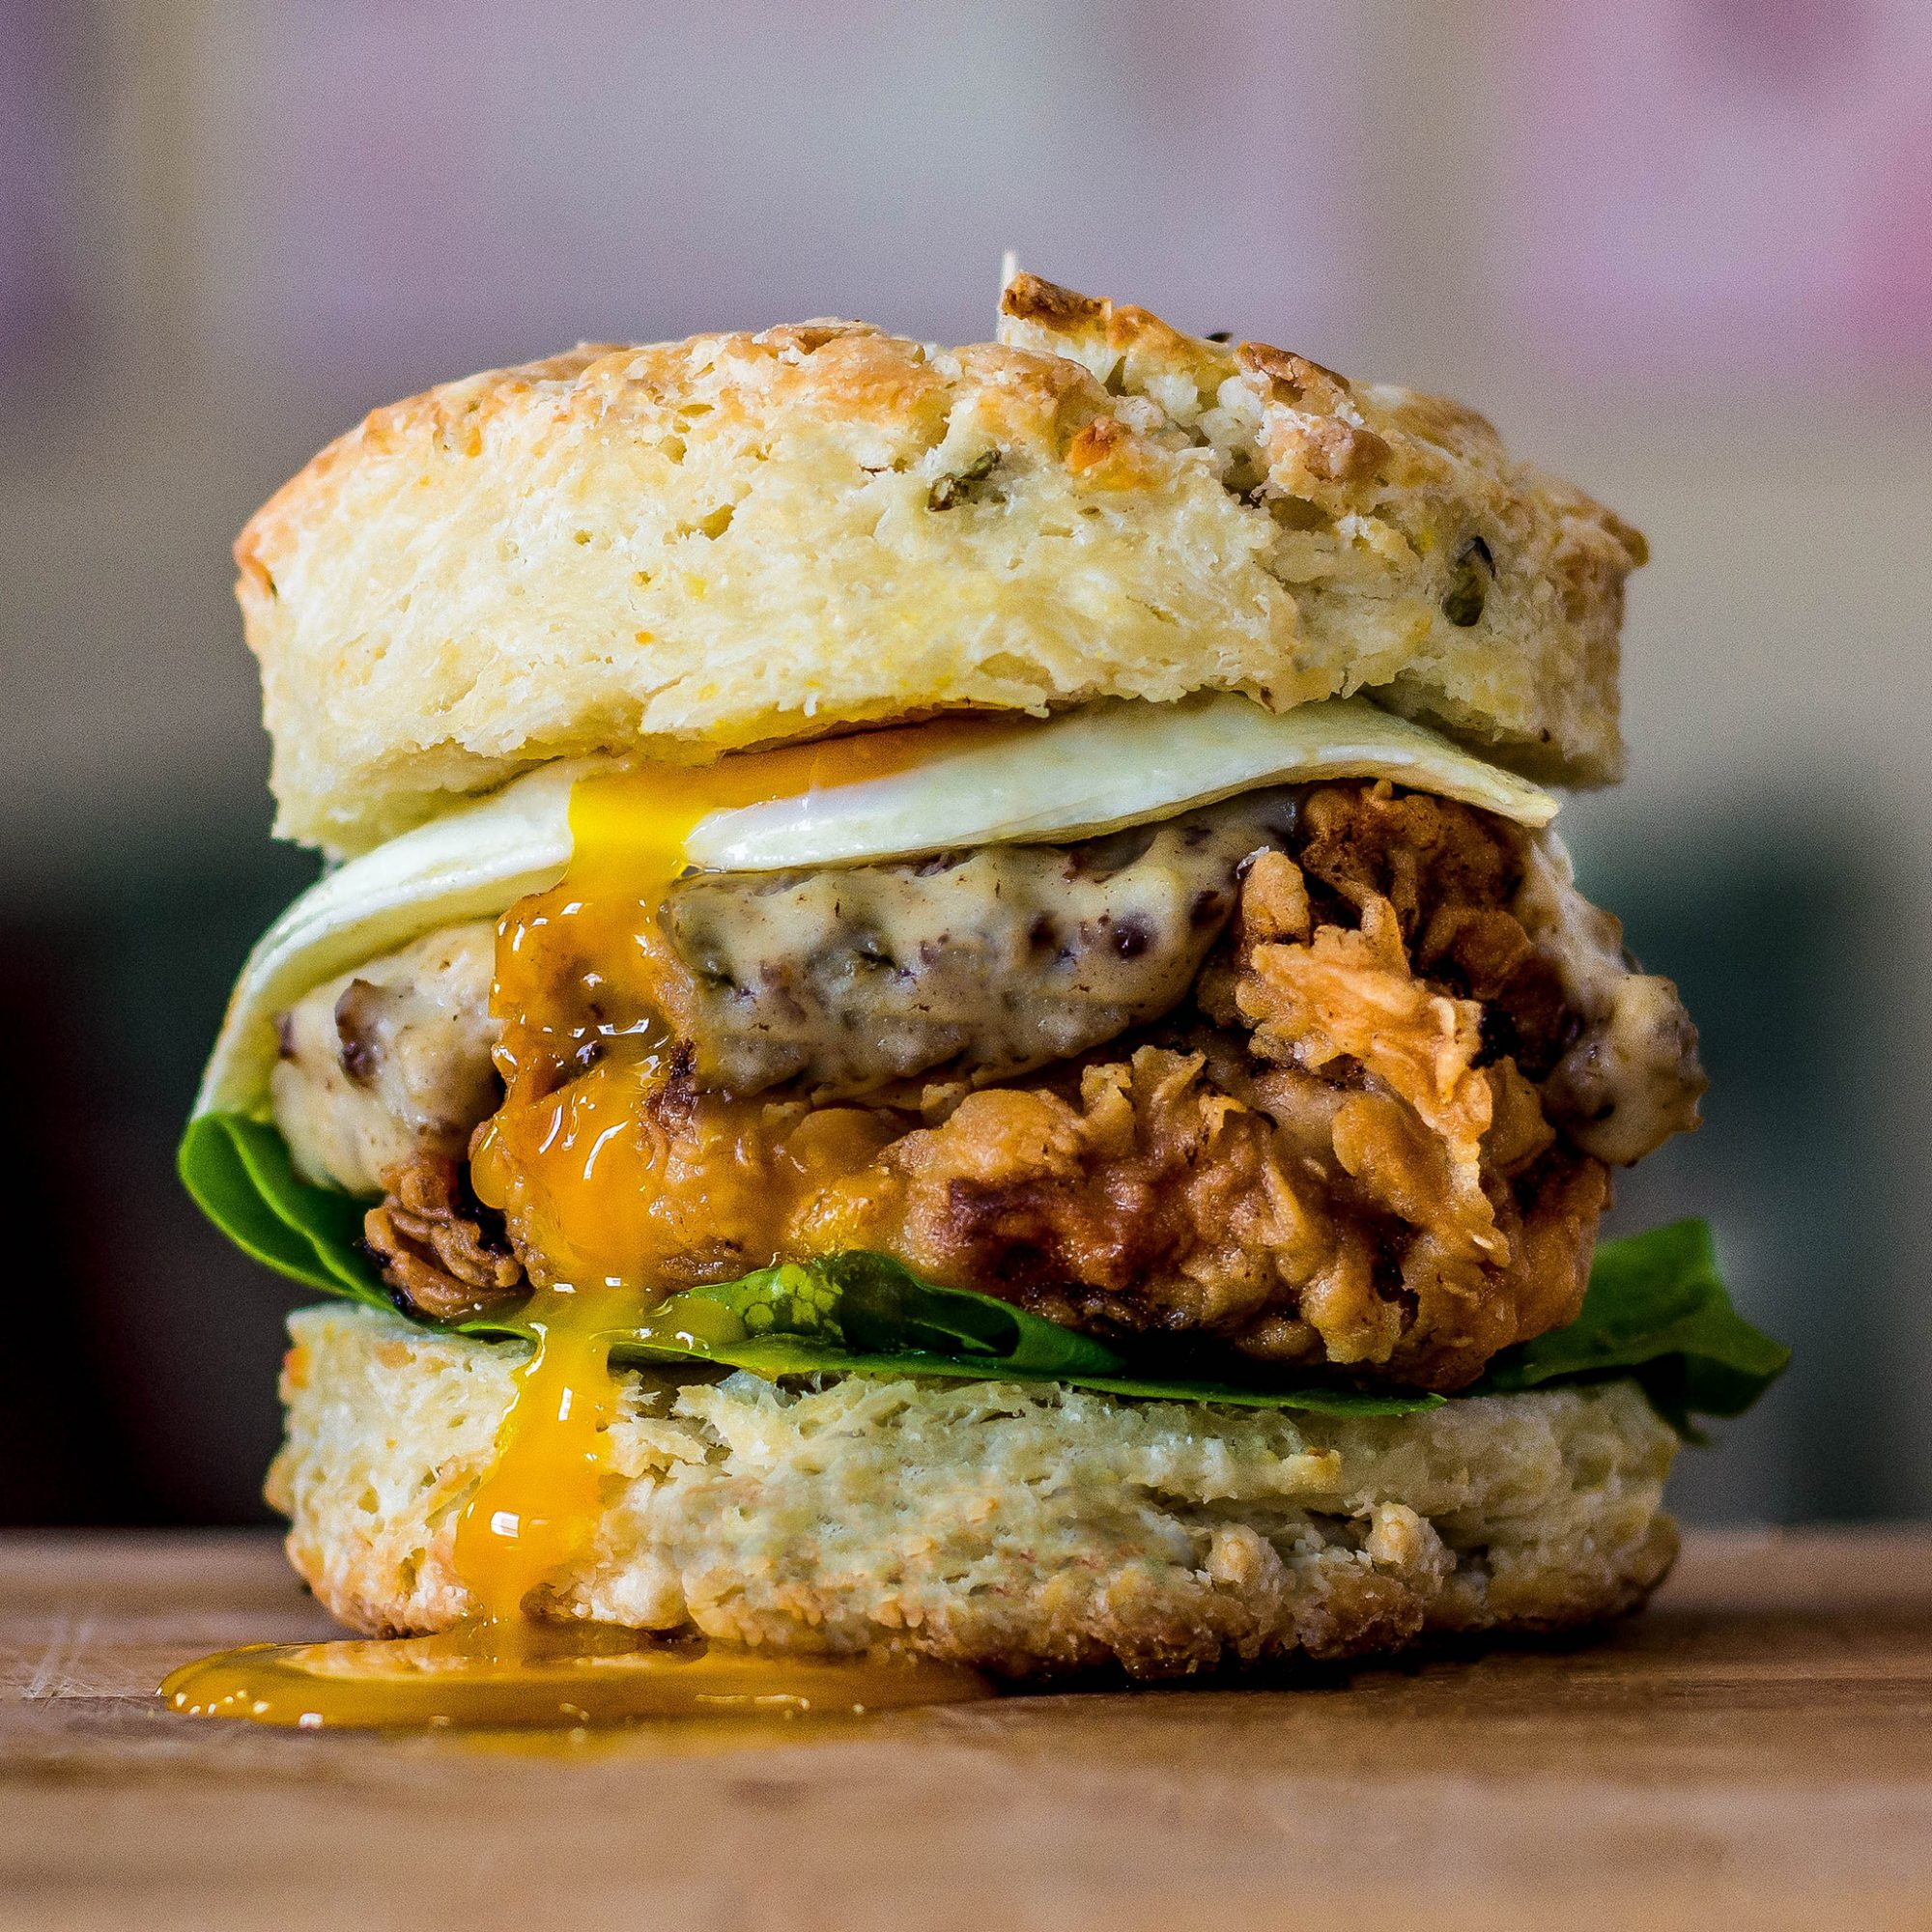 Fried Chicken & Biscuit Burger with Country Sausage Gravy